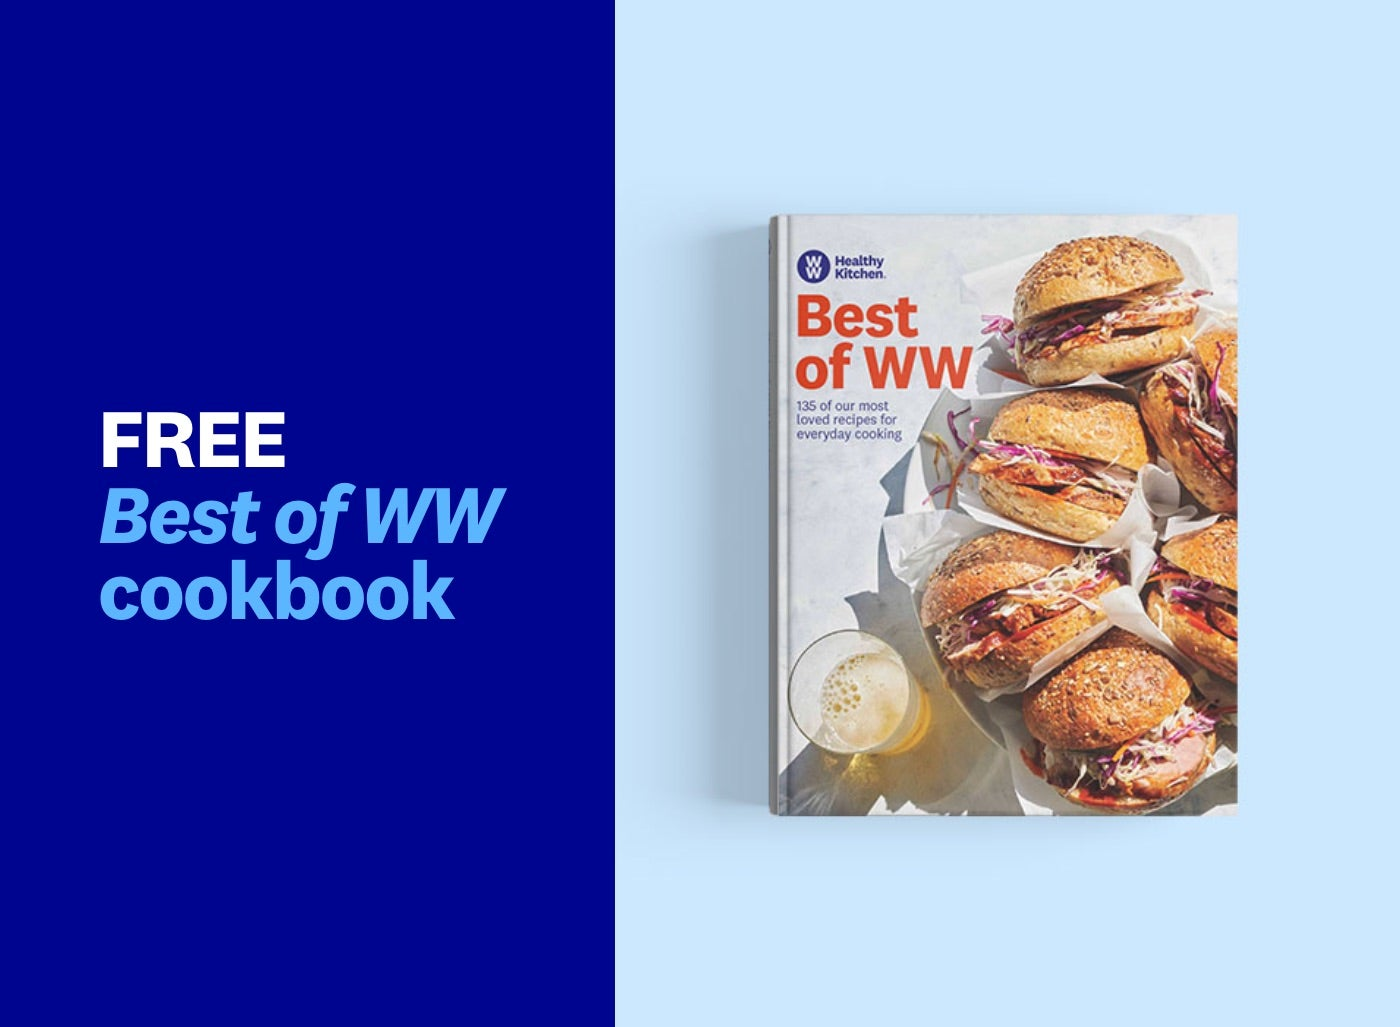 A cookbook with a cover that shows a plate full of sandwiches and a fizzy drink.